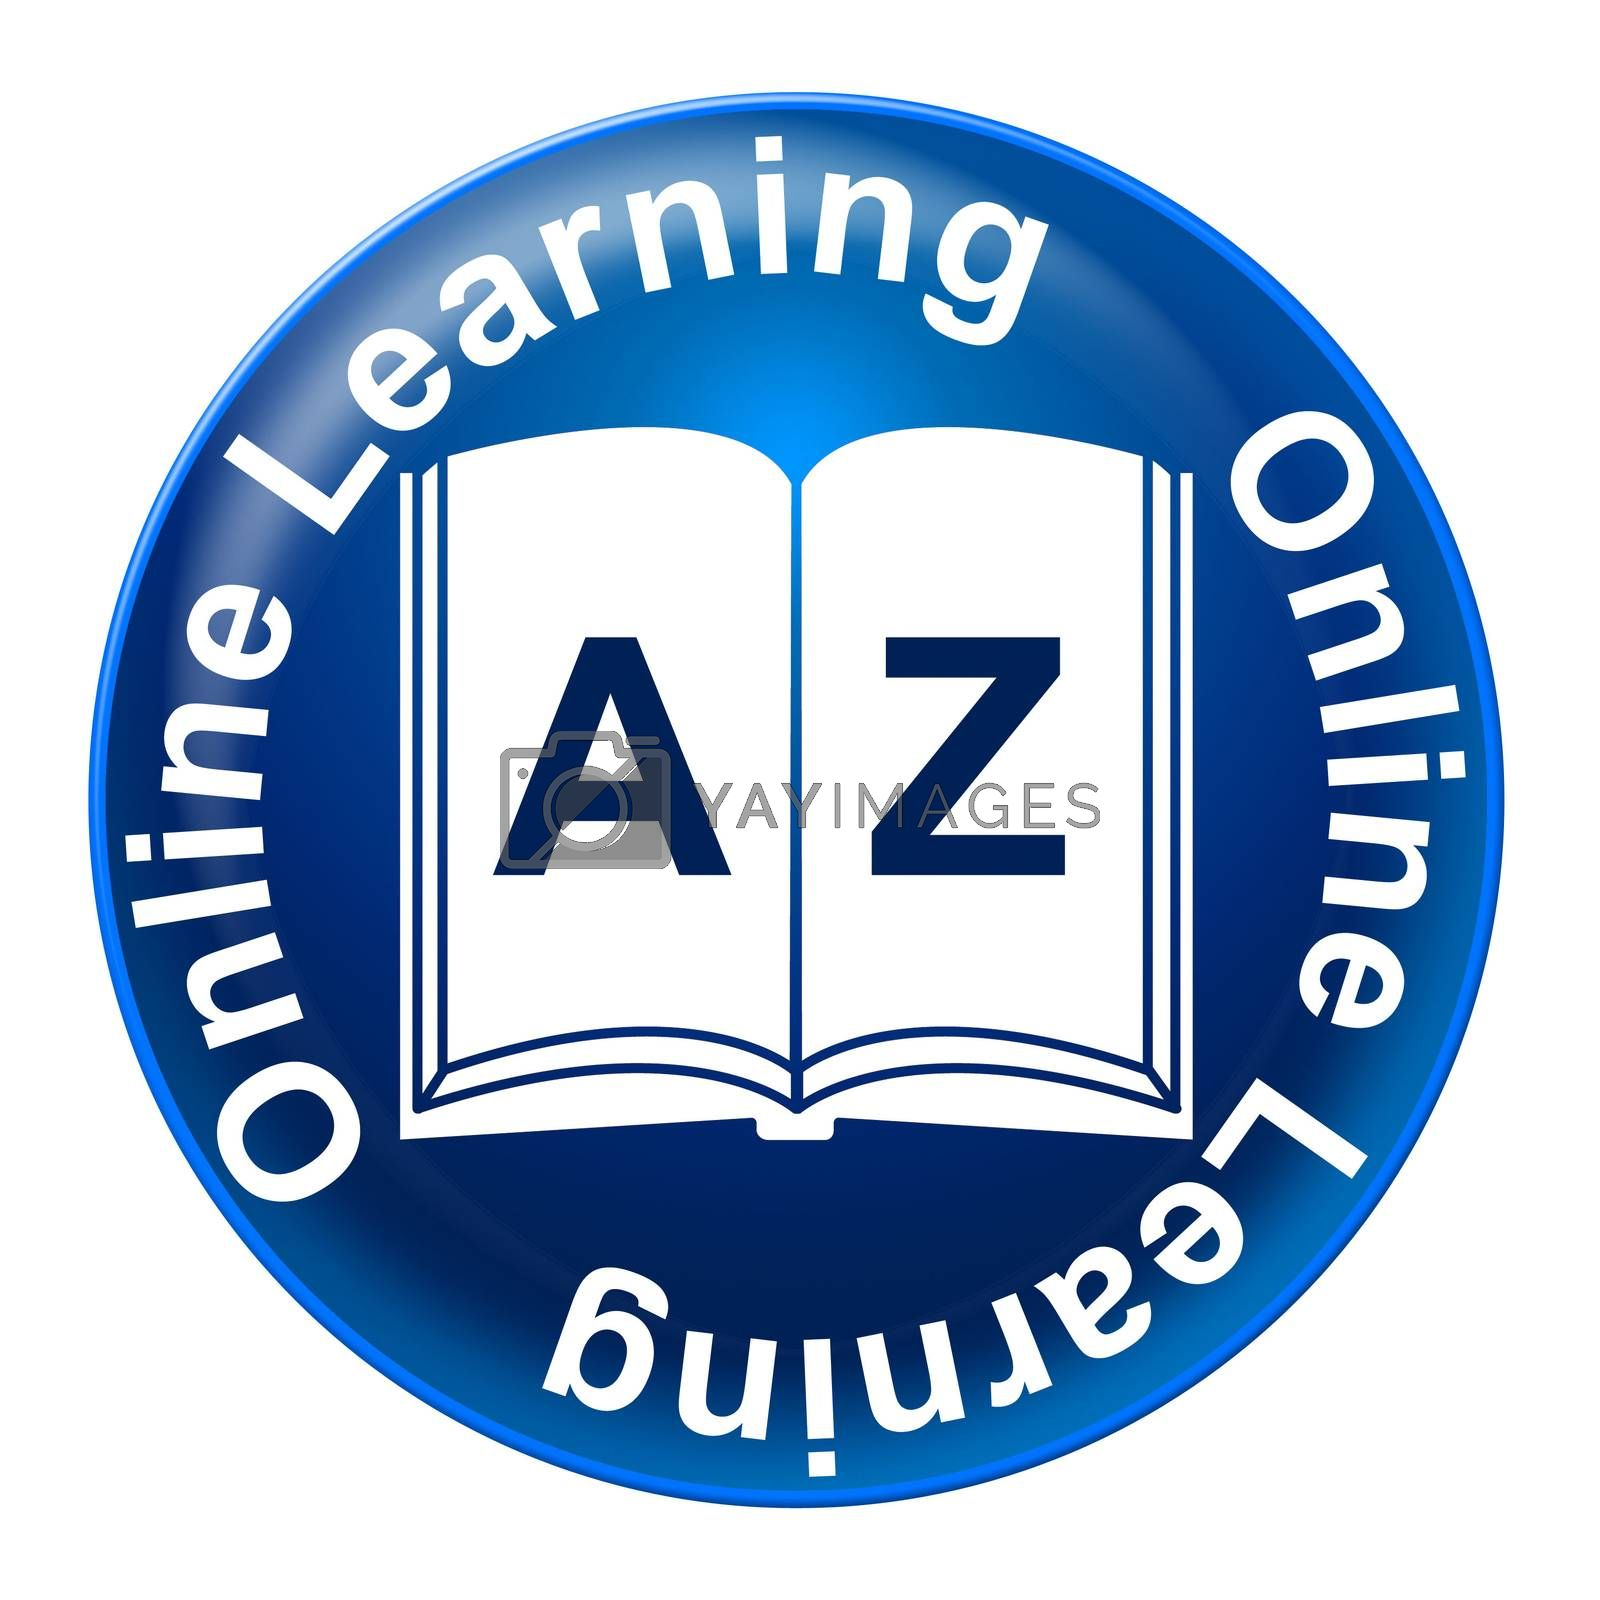 Online Learning Indicates World Wide Web And College by stuartmiles